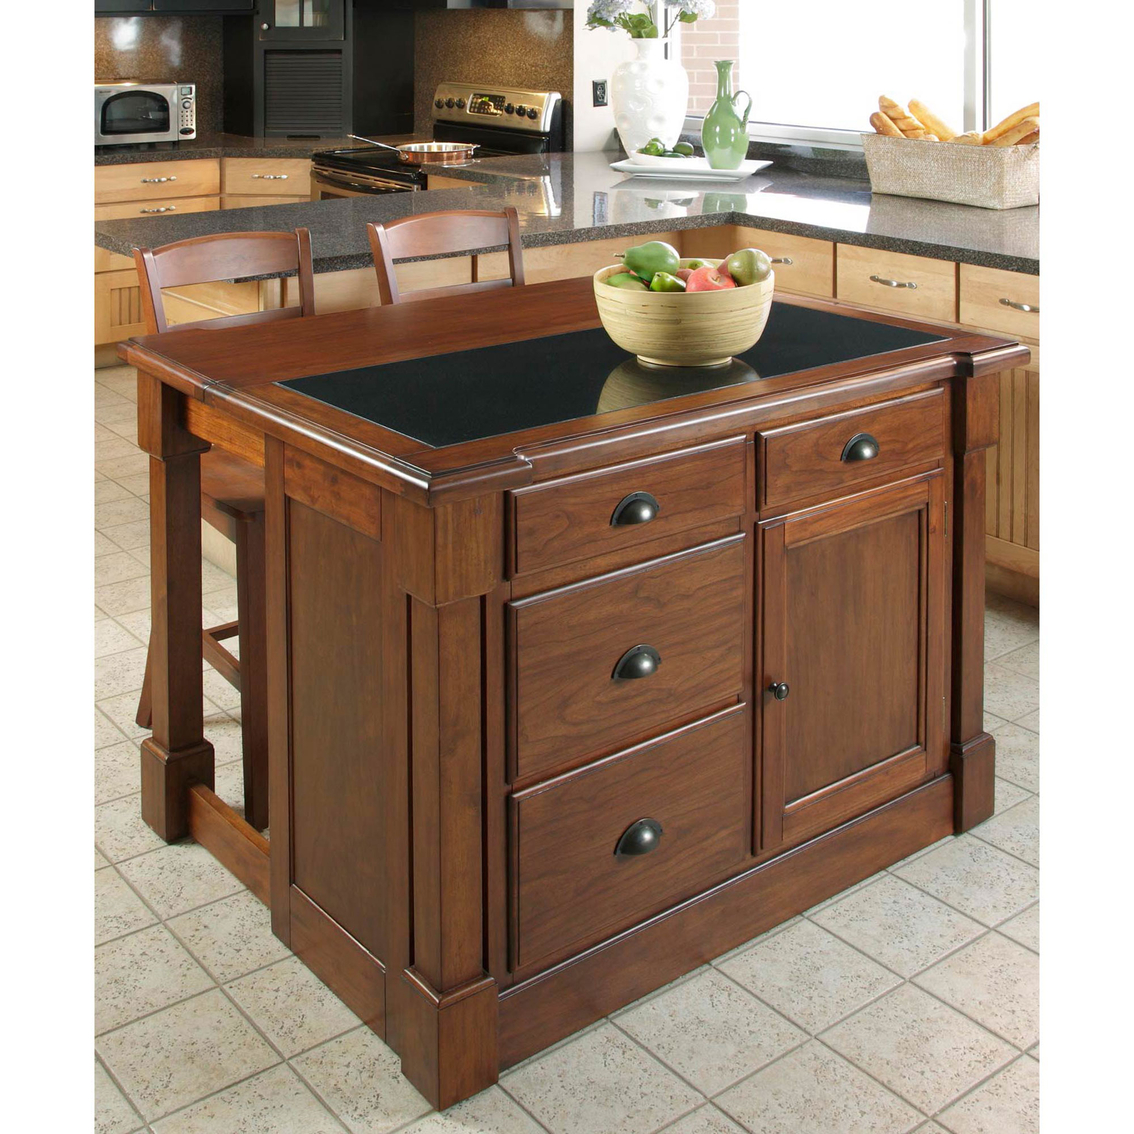 Kitchen island with granite insert - Home Styles Aspen Kitchen Island With Granite Insert And Two Bar Stools